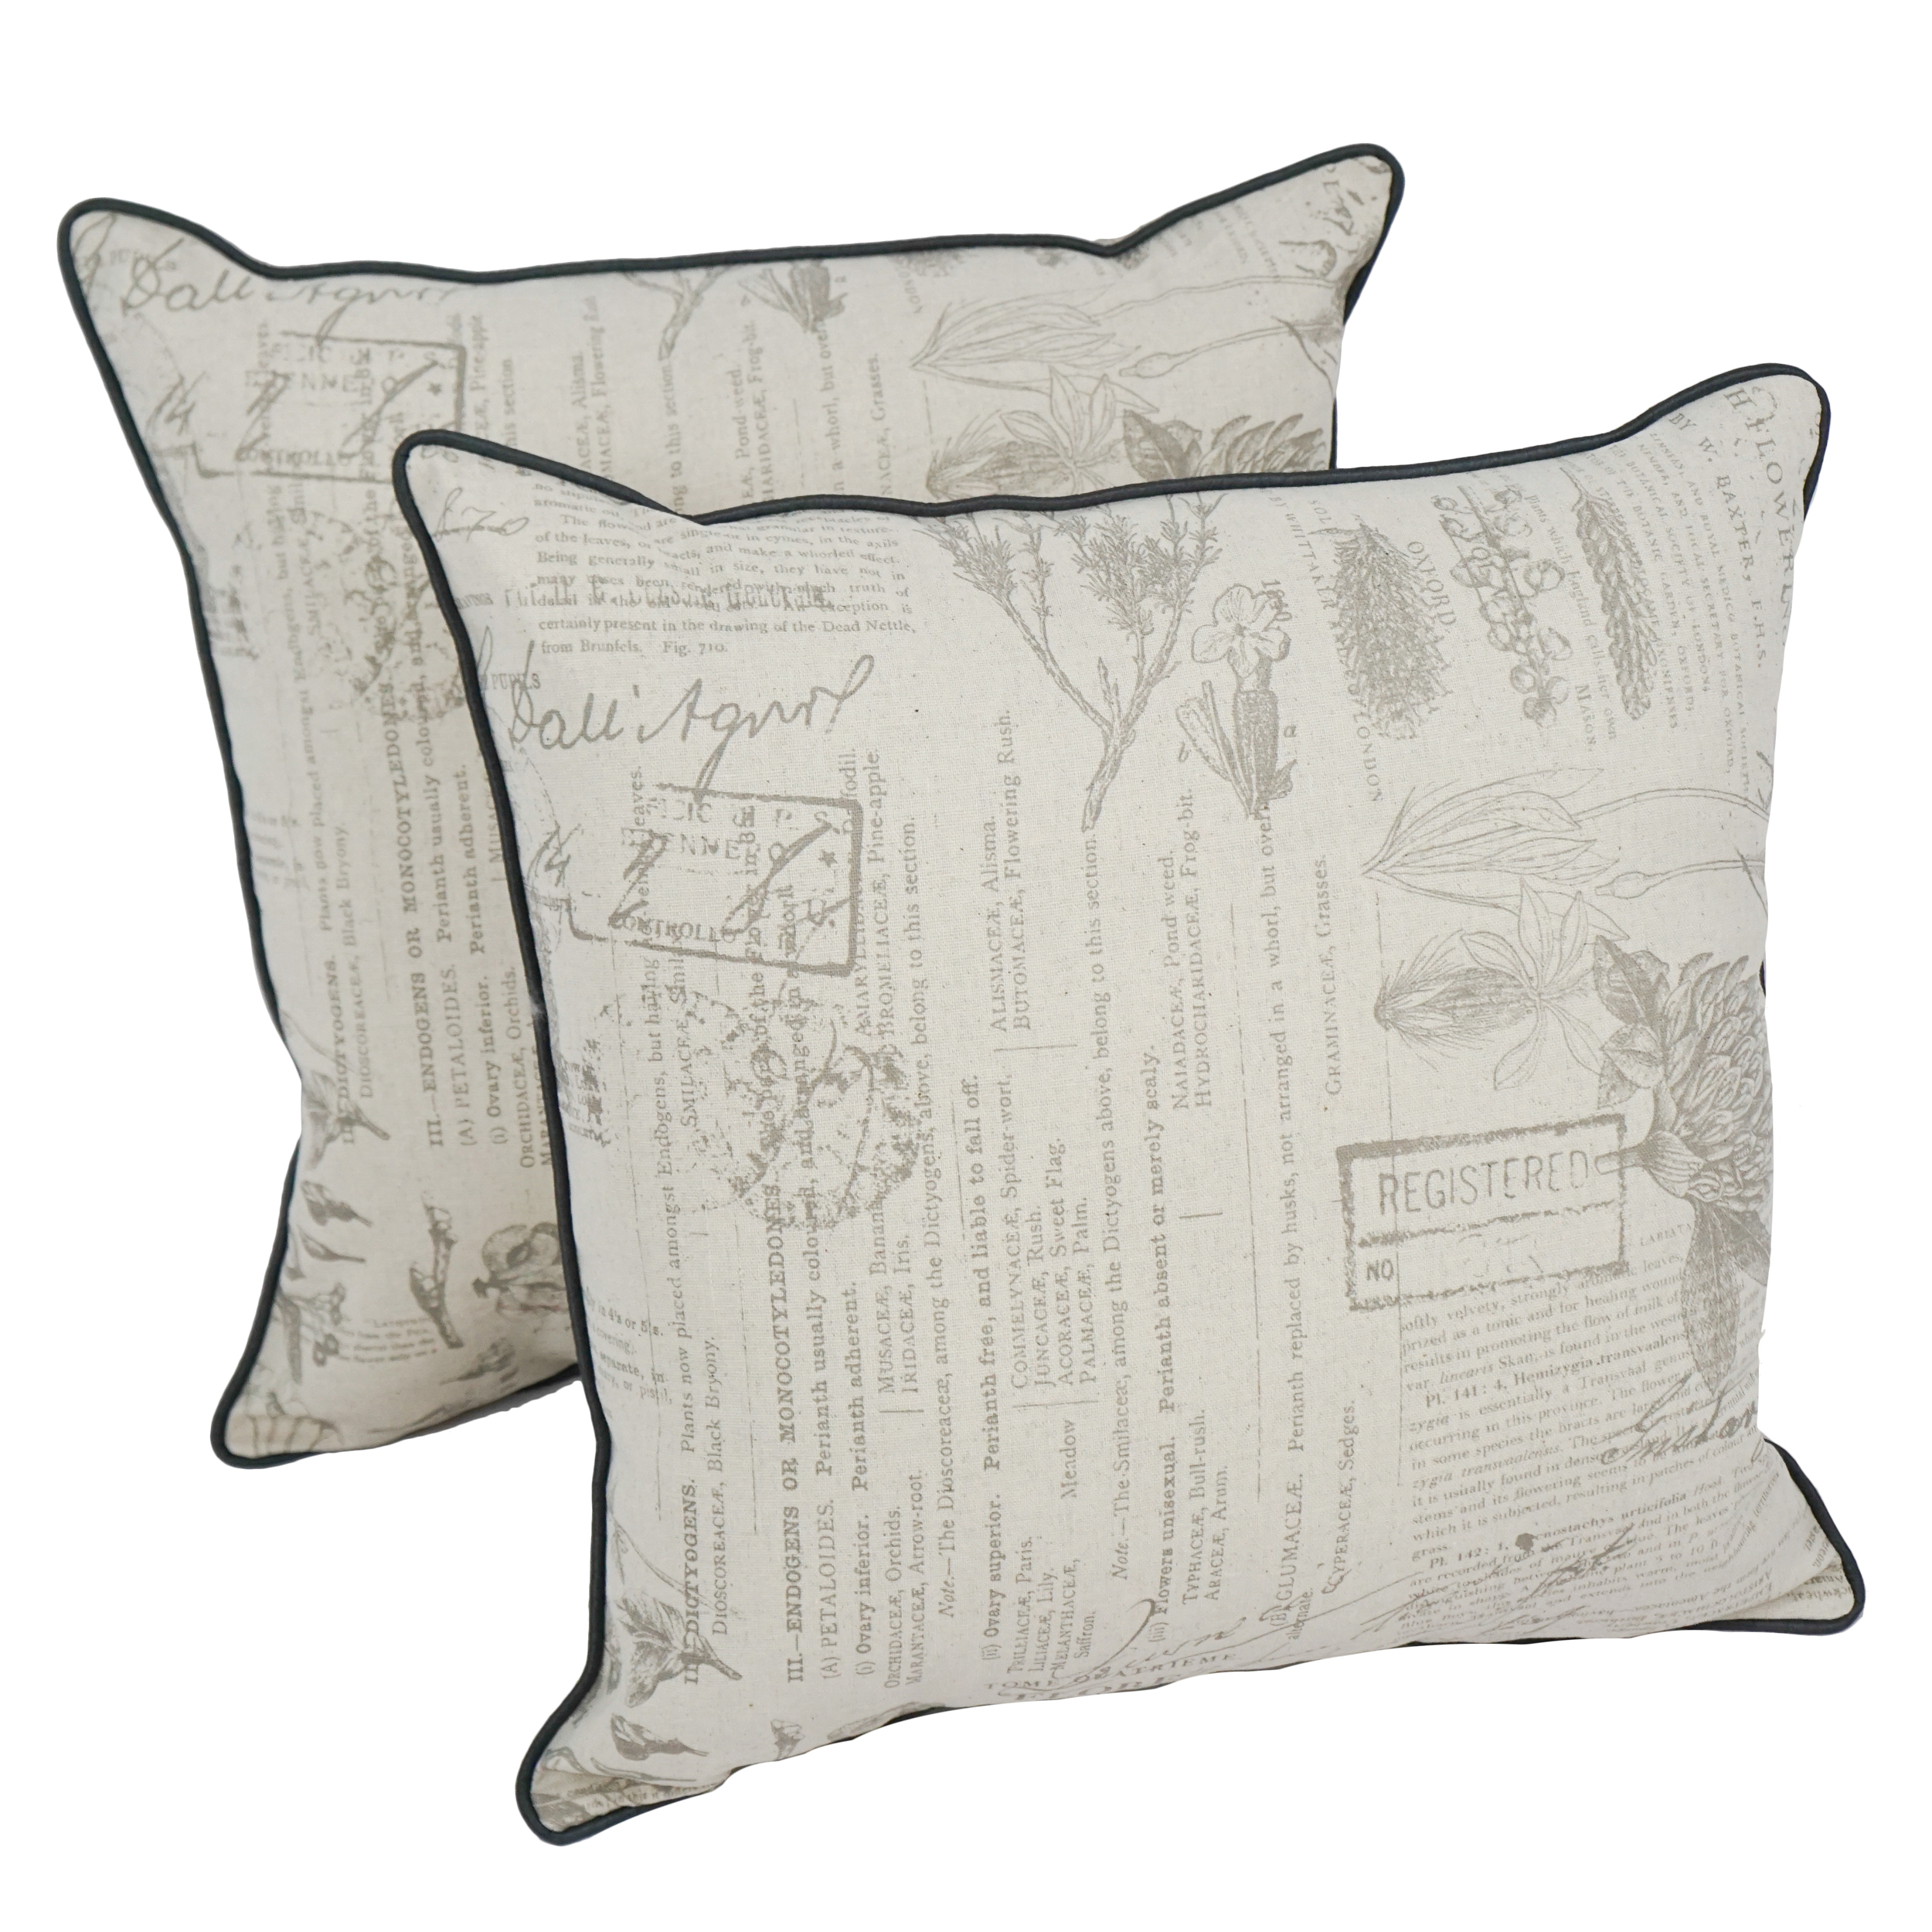 18-inch Corded Throw Pillows with Inserts (Set of 2) - Journal Botanica